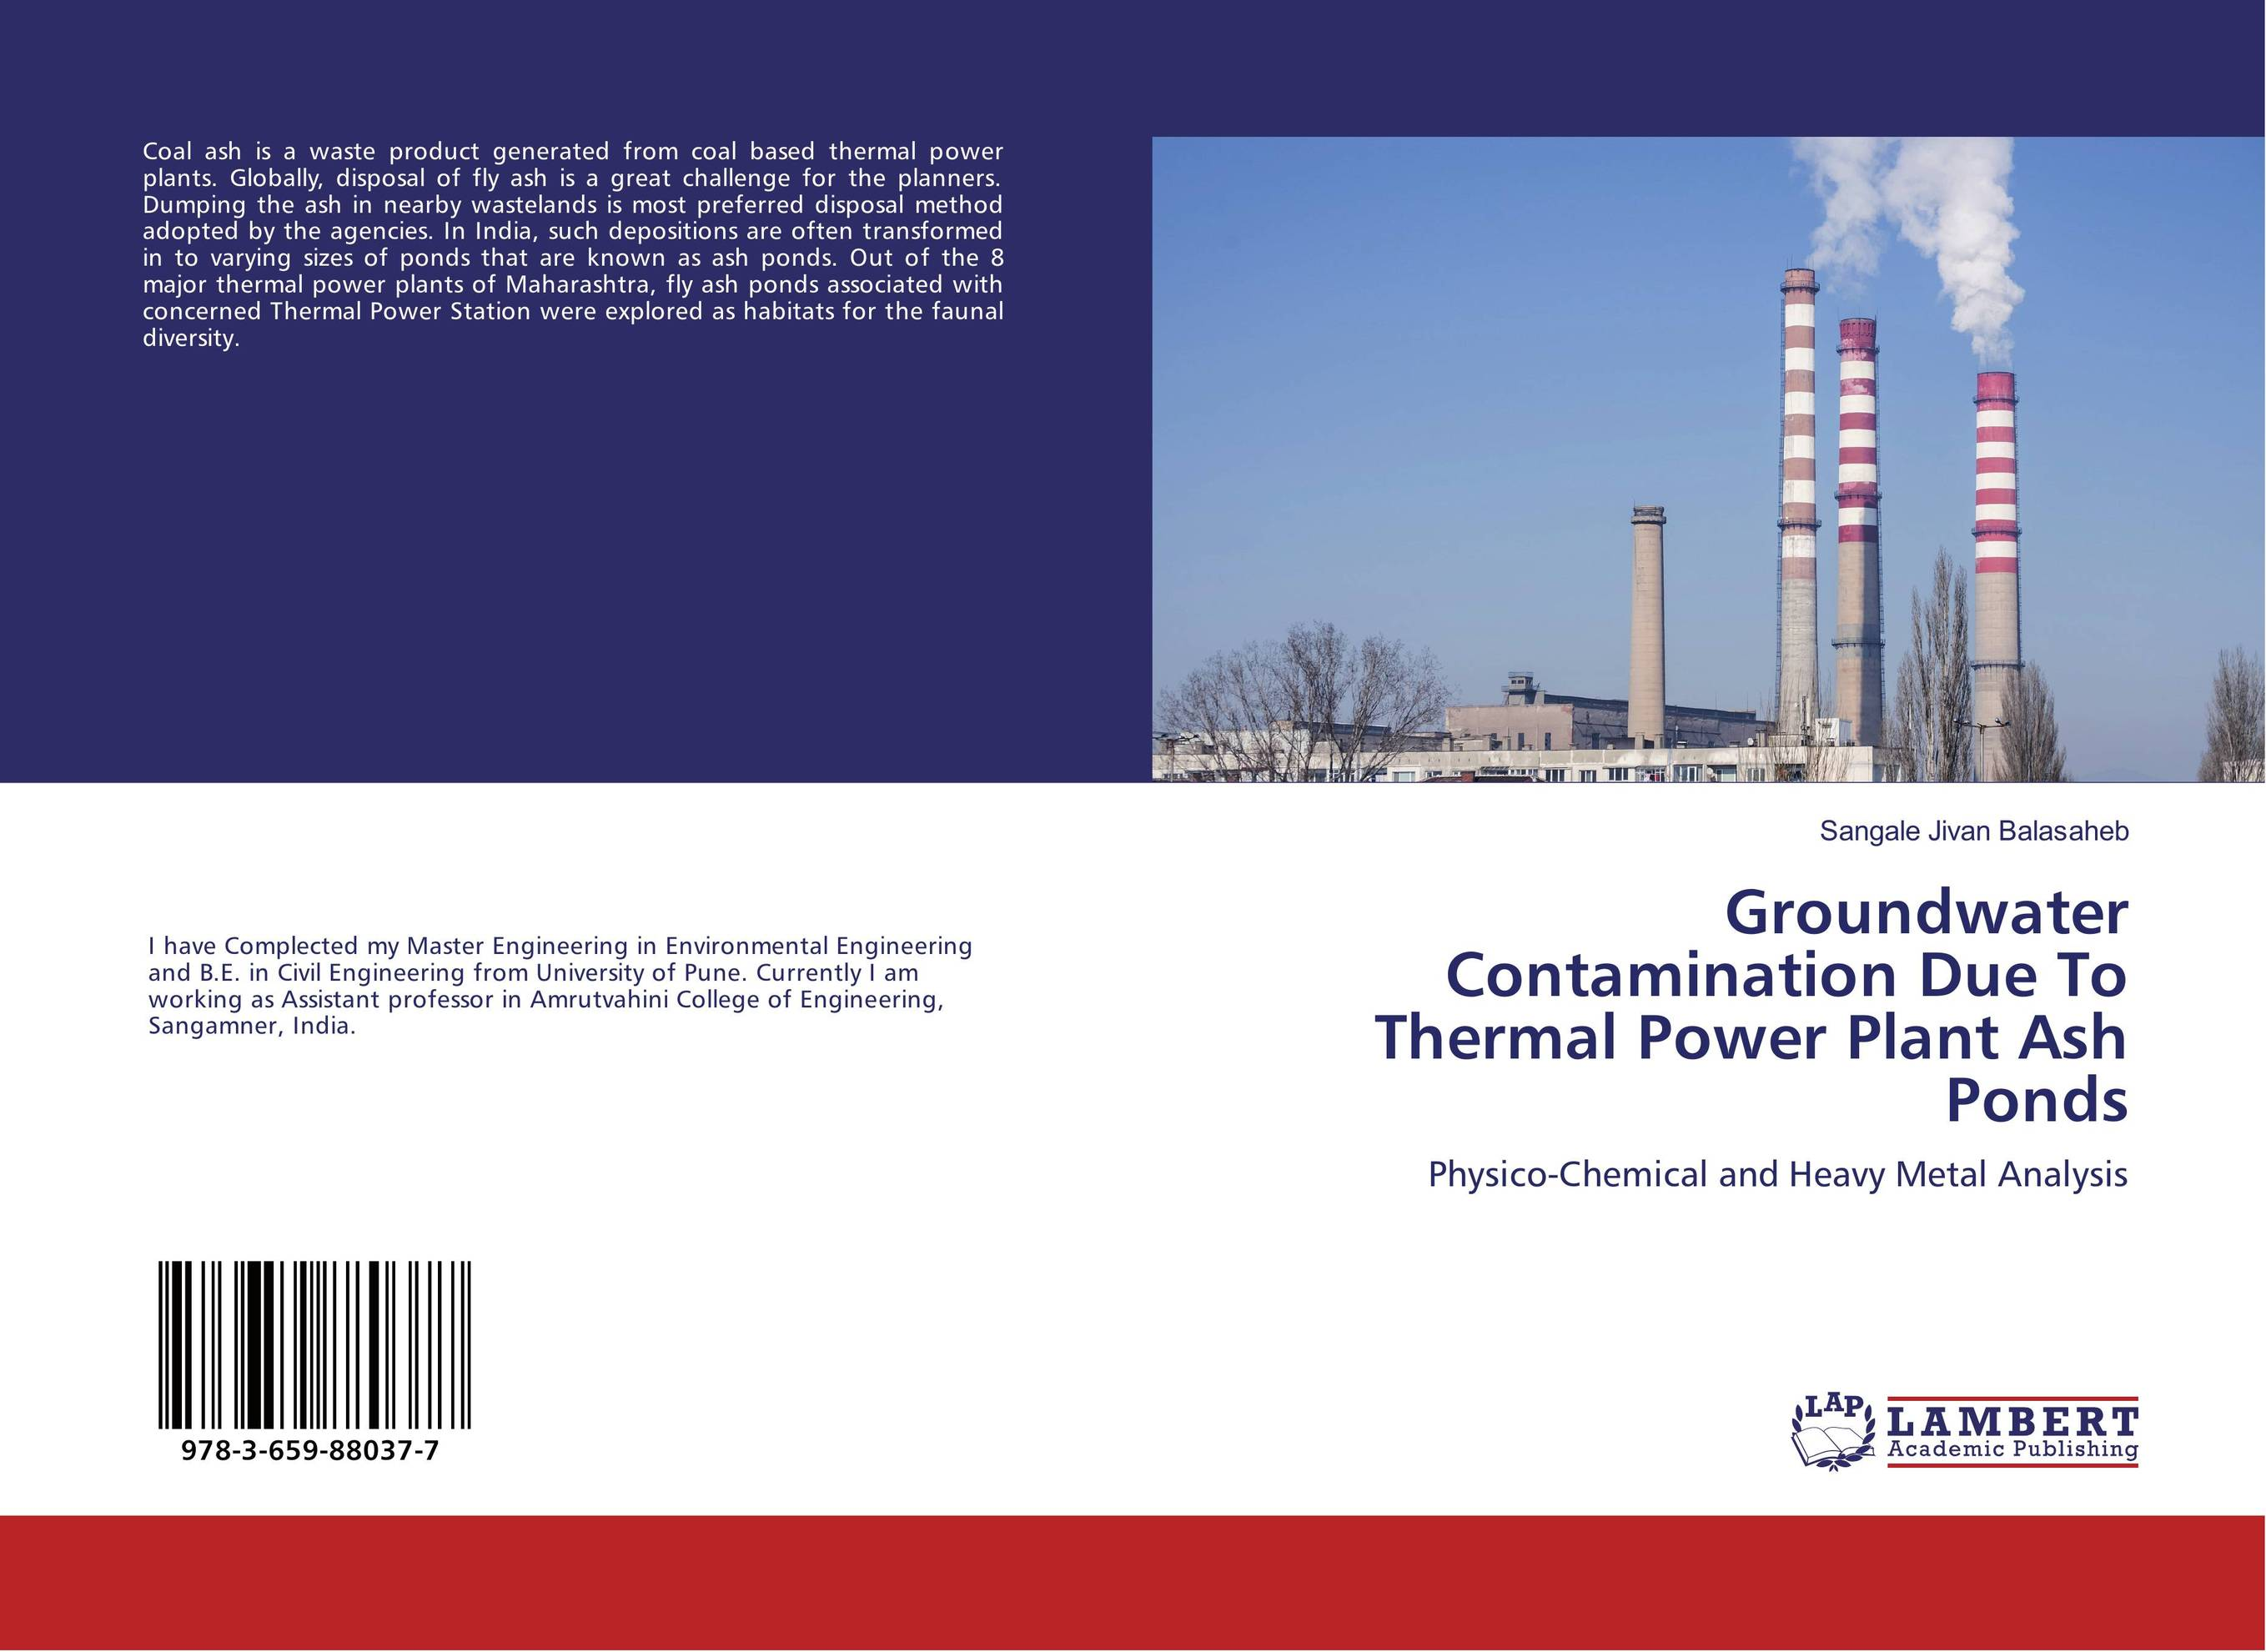 Groundwater Contamination Due To Thermal Power Plant Ash Ponds seek thermal